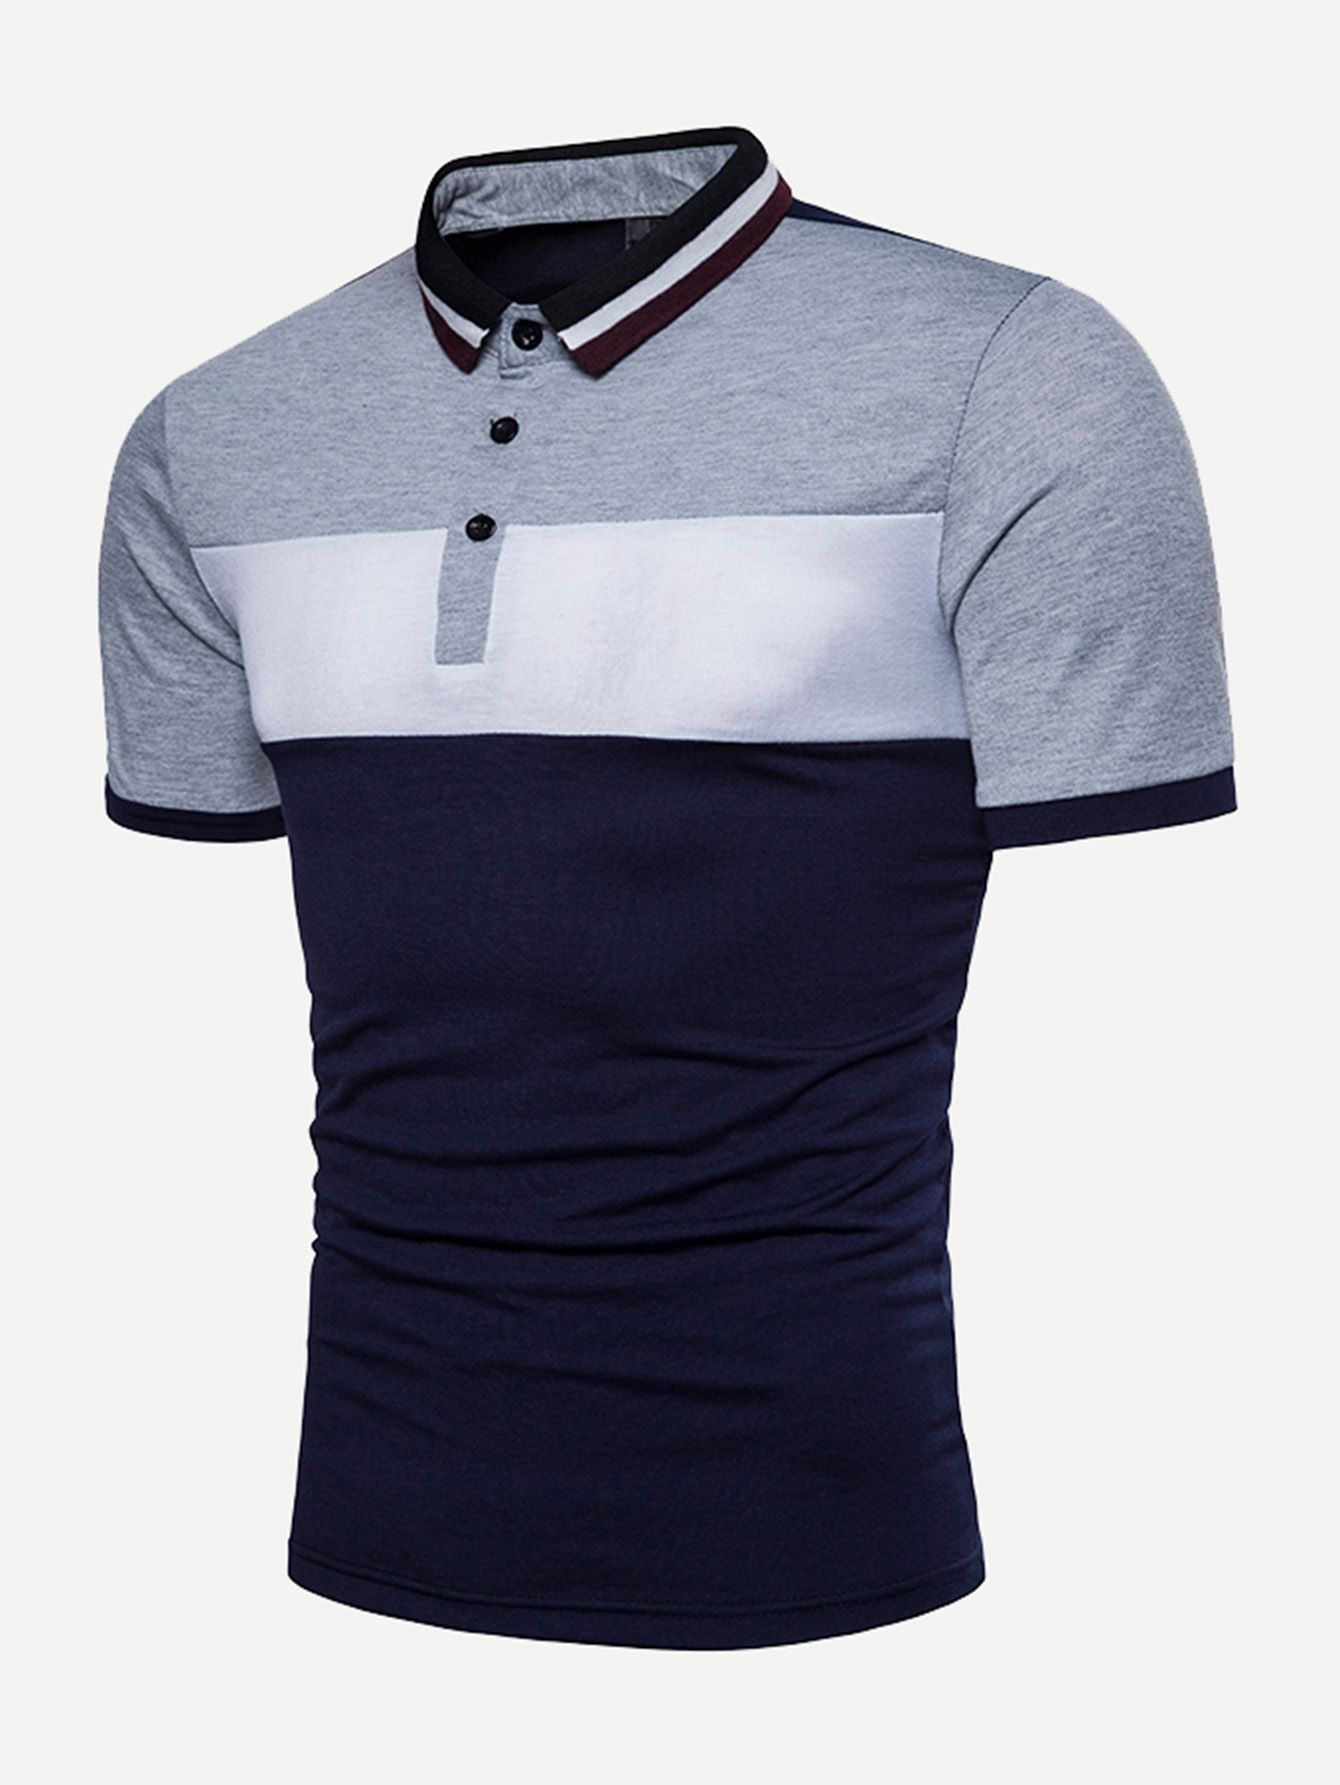 d06558507 Polo Shirts Price In Egypt - DREAMWORKS